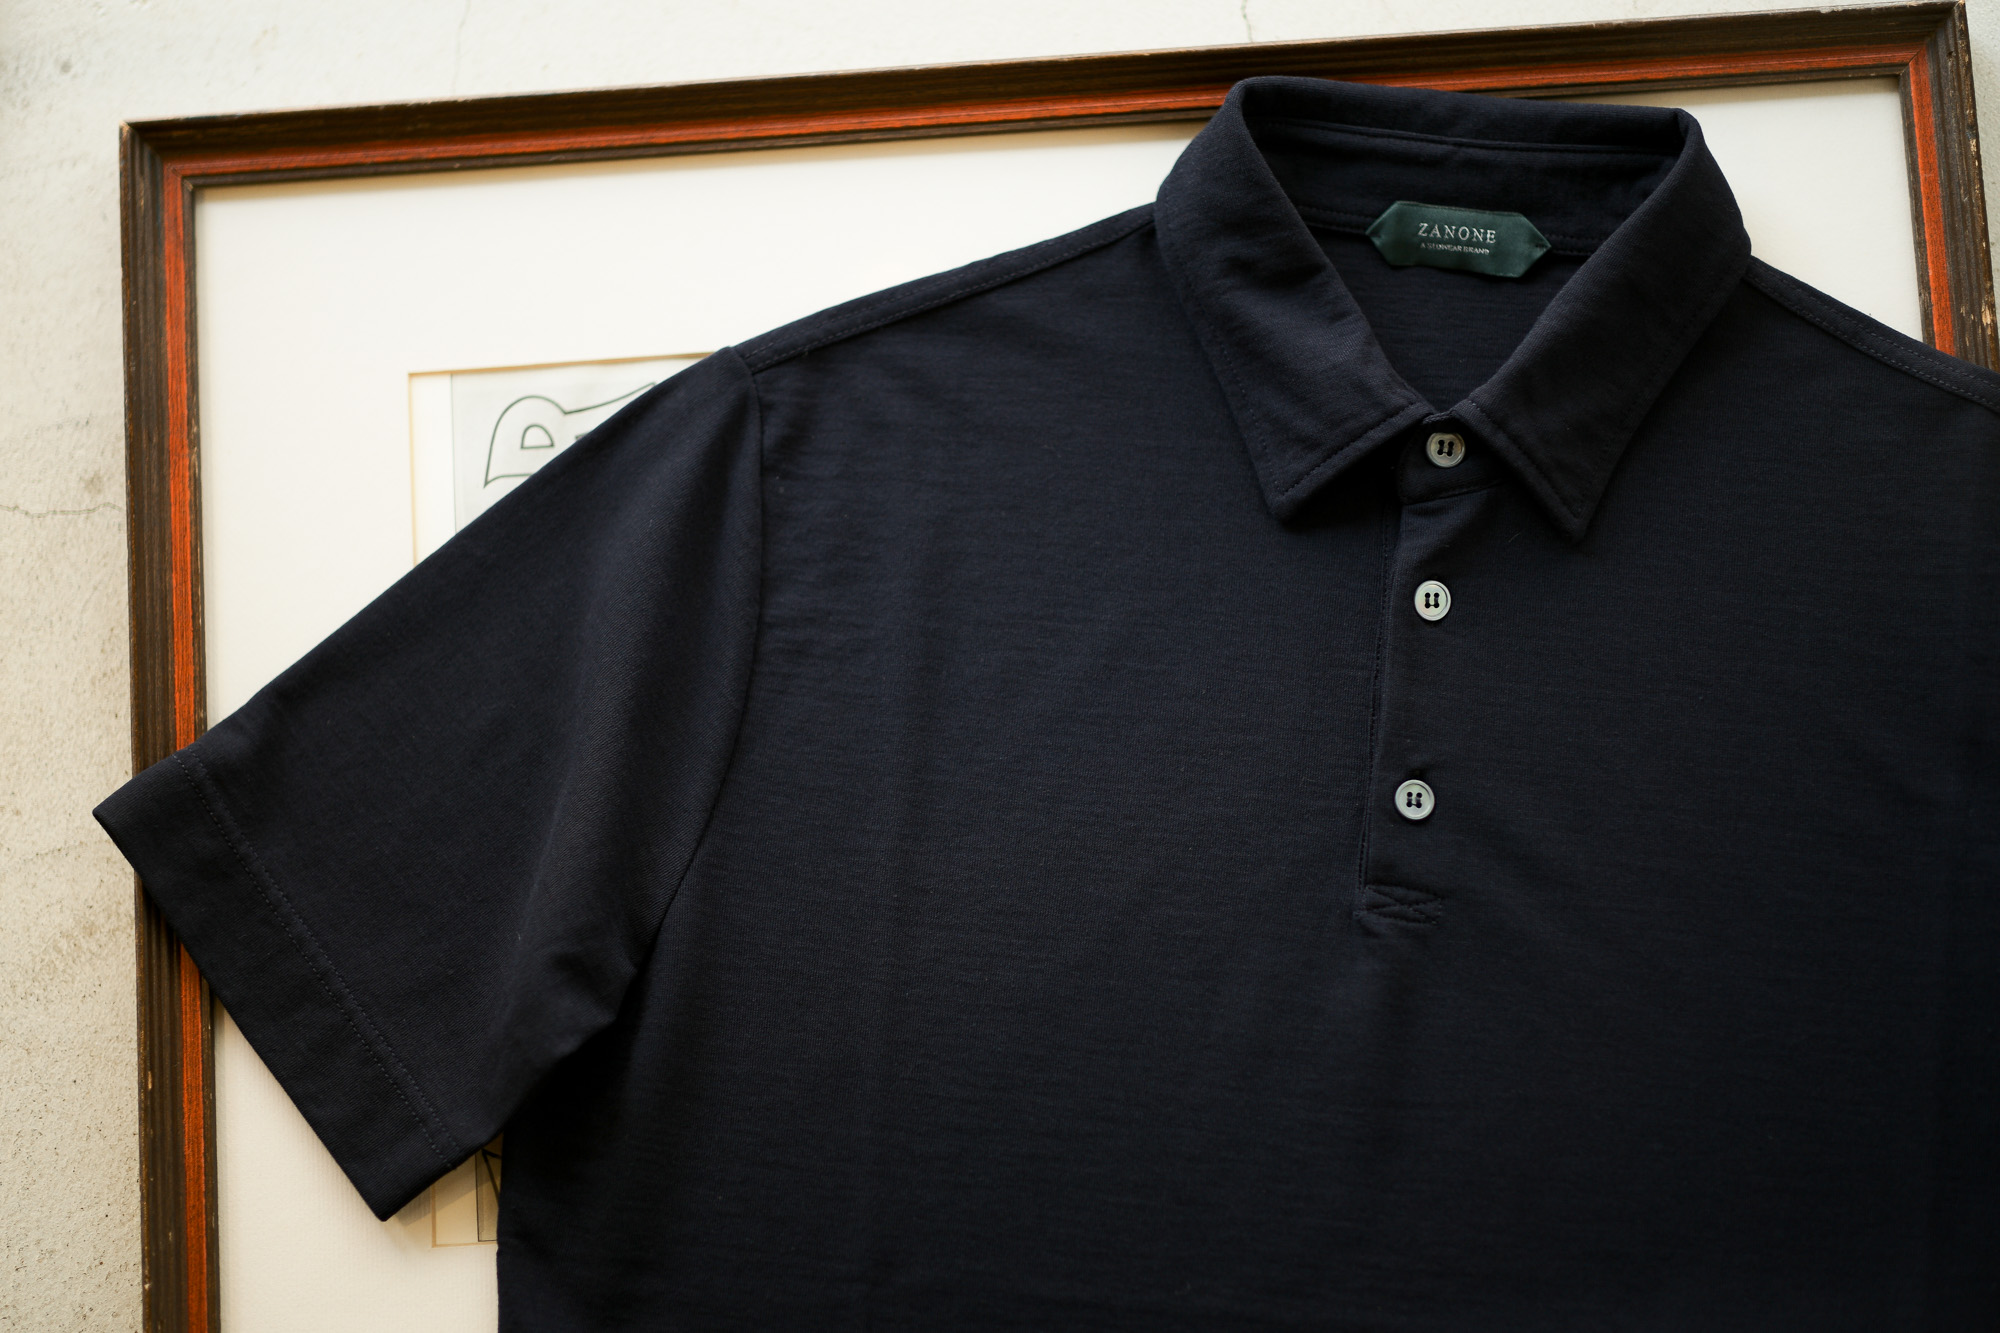 ZANONE(ザノーネ) Polo Shirt ice cotton アイスコットン ポロシャツ NAVY (ネイビー・Z0542)  made in italy (イタリア製) 2019 春夏新作 愛知 名古屋 altoediritto アルトエデリット